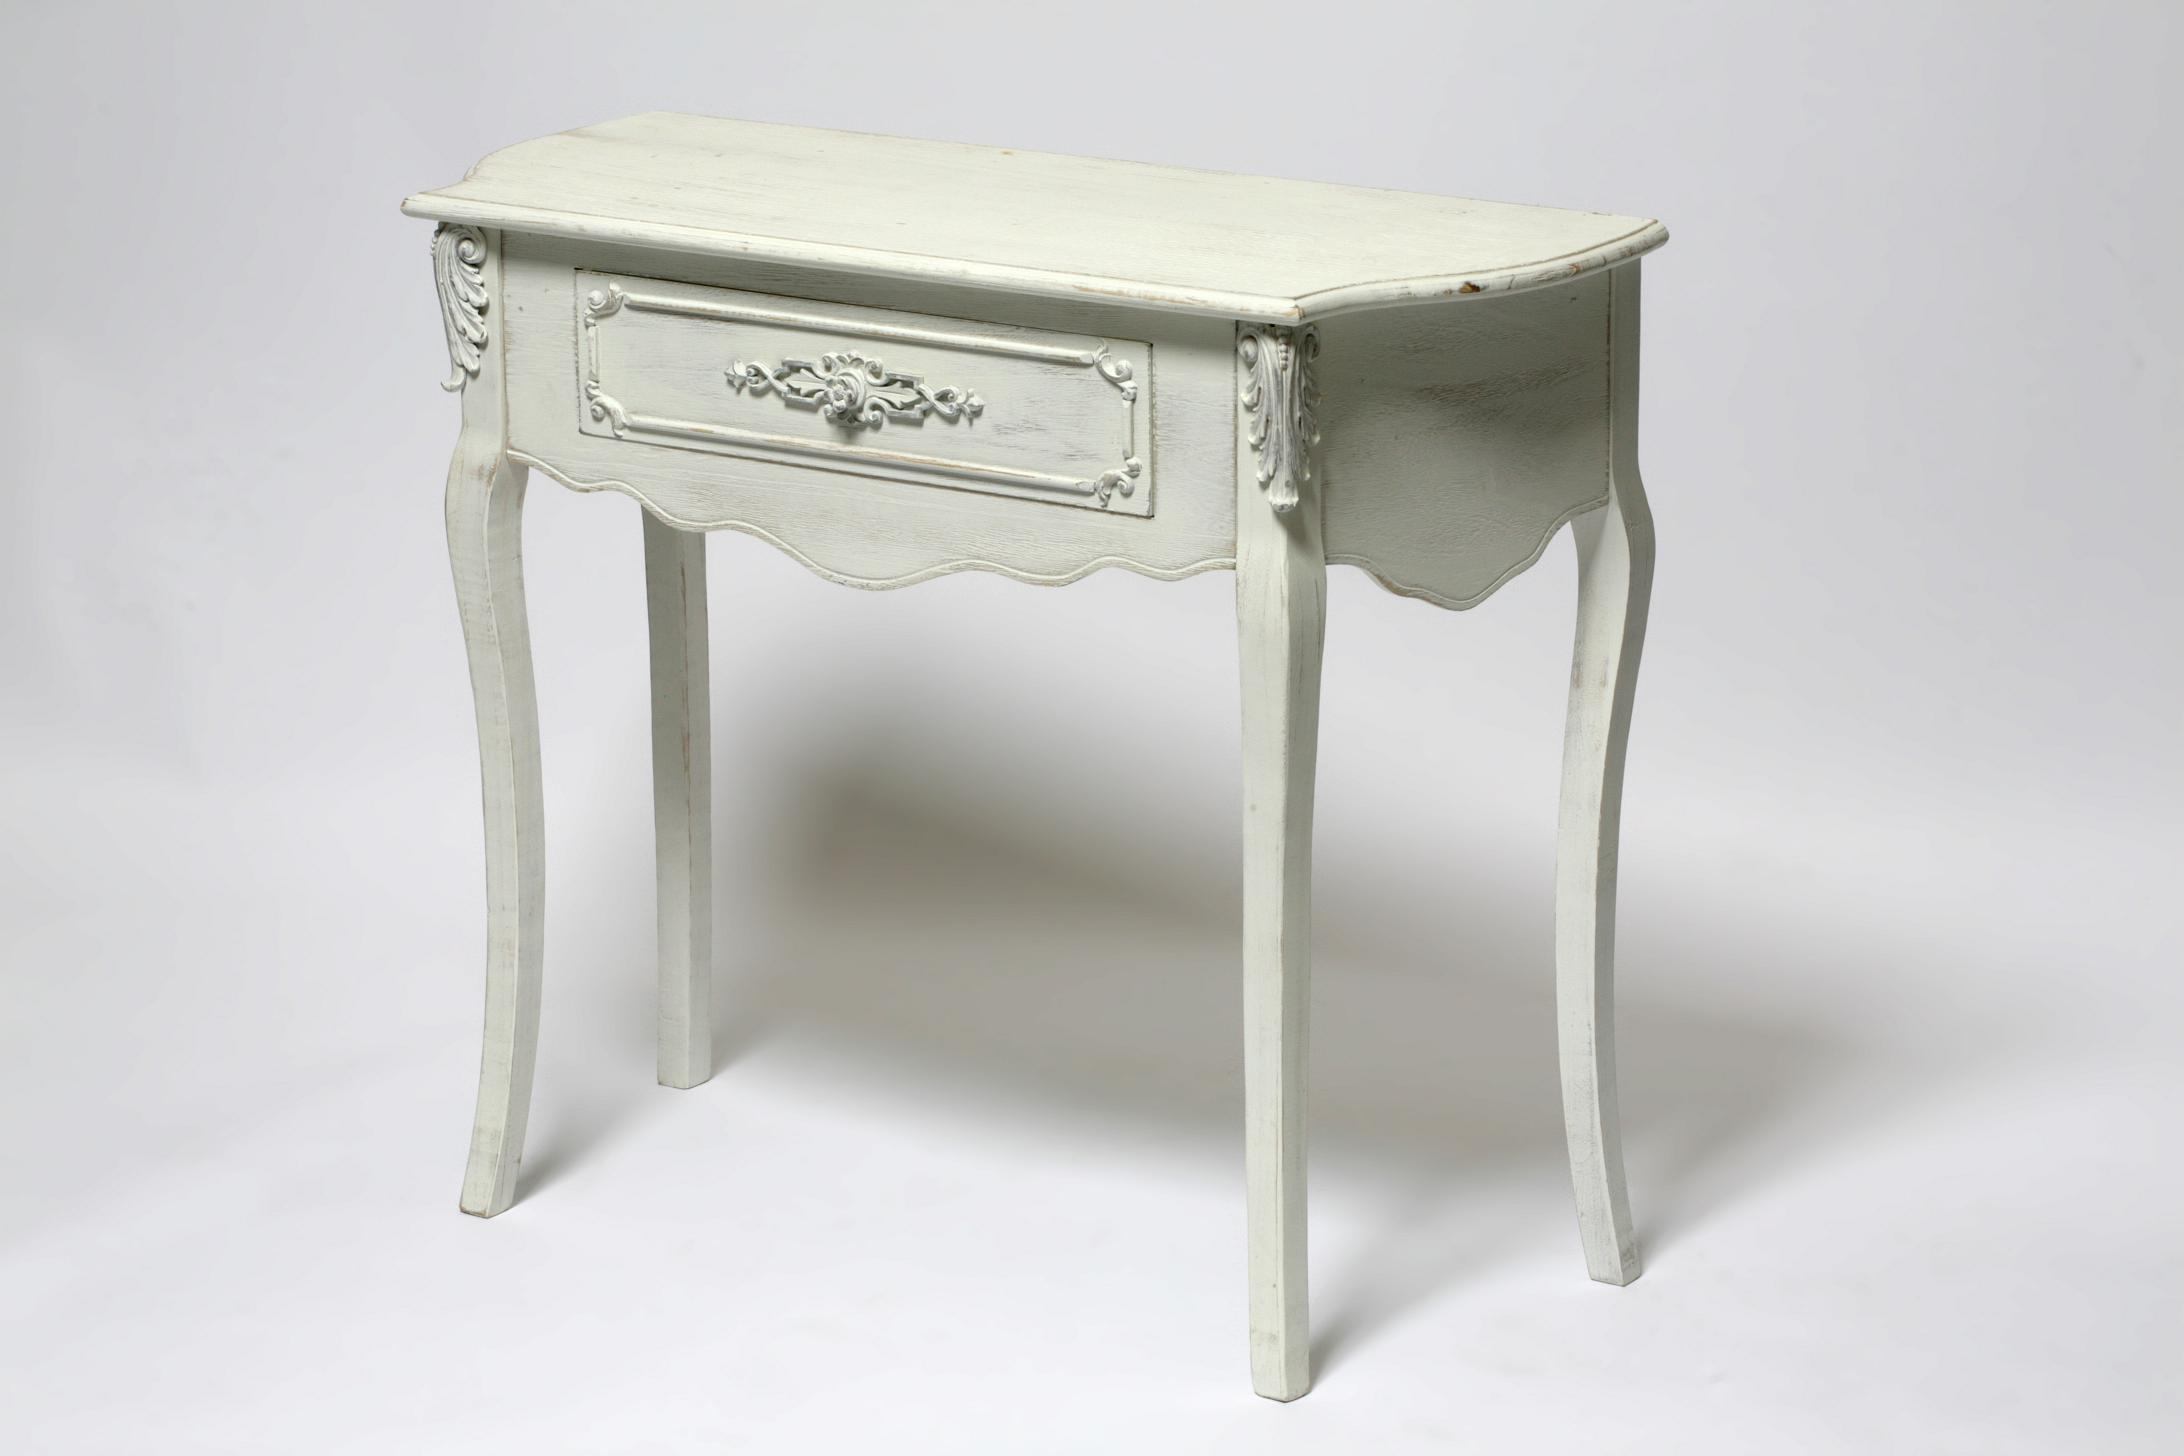 end table design tables with drawers and shelf coffee furniture small narrow whiteessed carved drawer white full size antique metal wood trunk hidden storage couch for bedroom